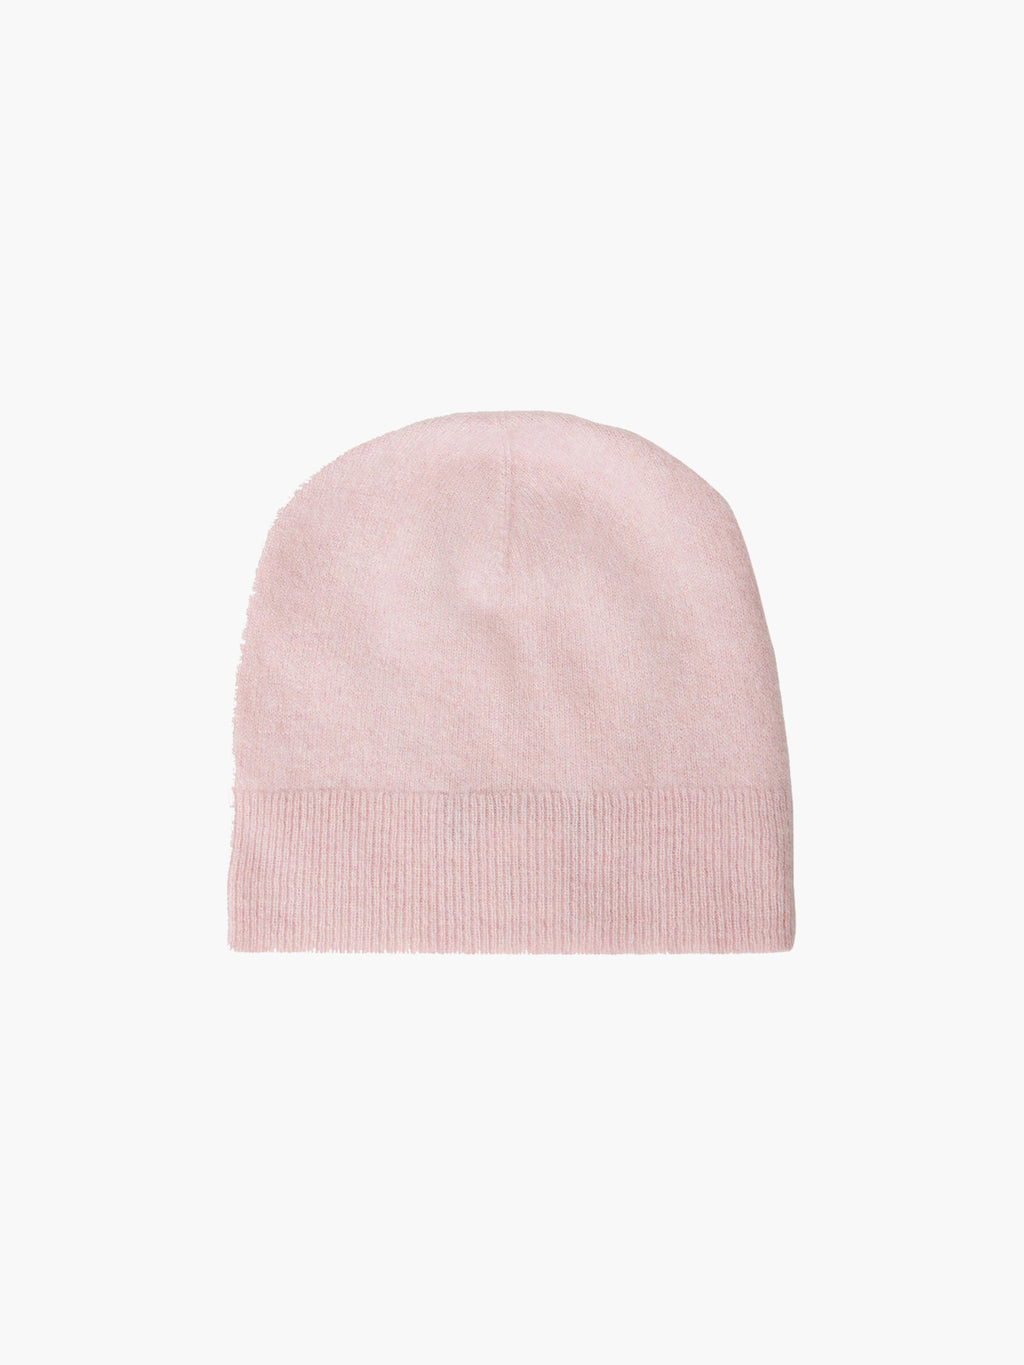 Alby Cashmere Beanie Hat | Cameo